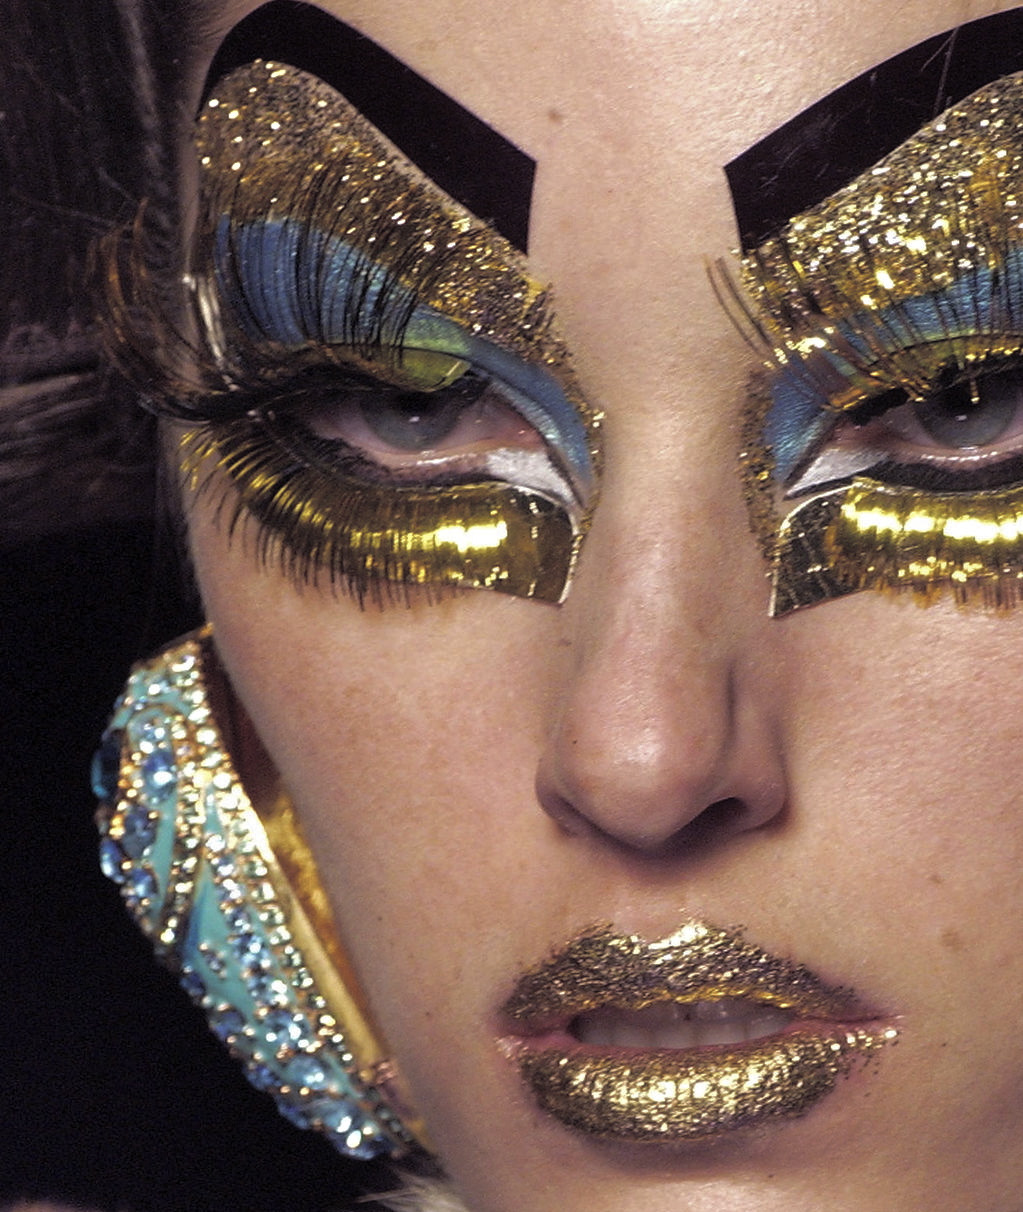 sfilate:  Christian Dior Haute Couture S/S 2004 Beauty